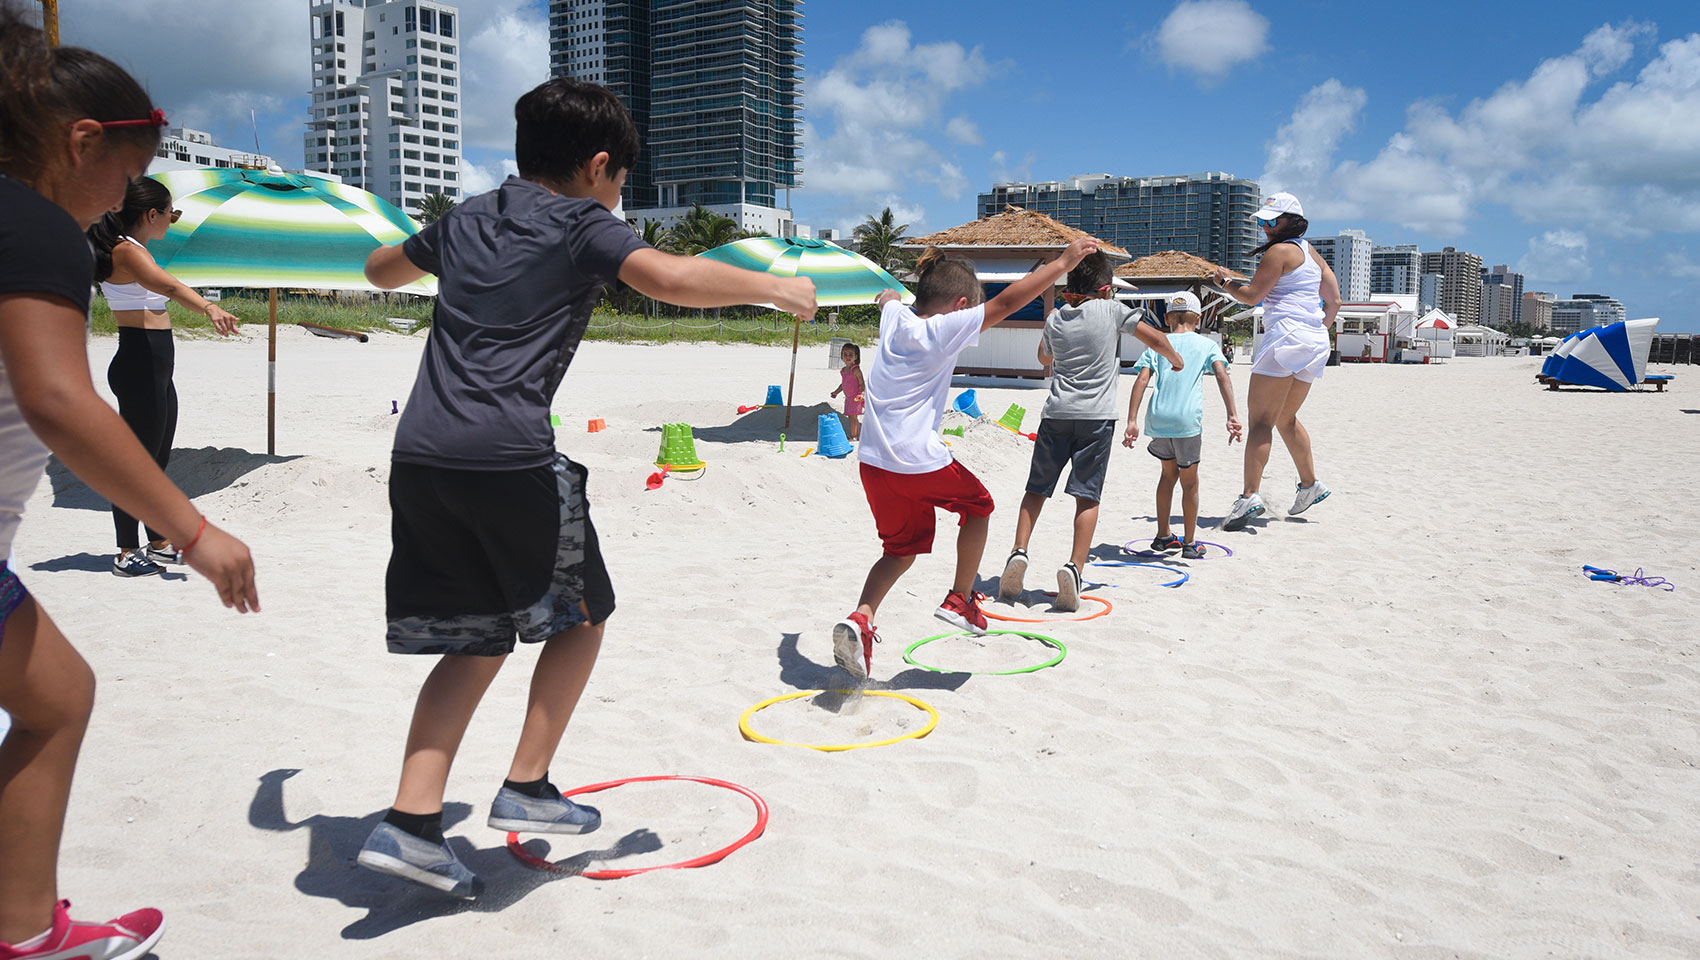 Surfcomber DAYLIFE beach instructor led game with kids going through obstacle course